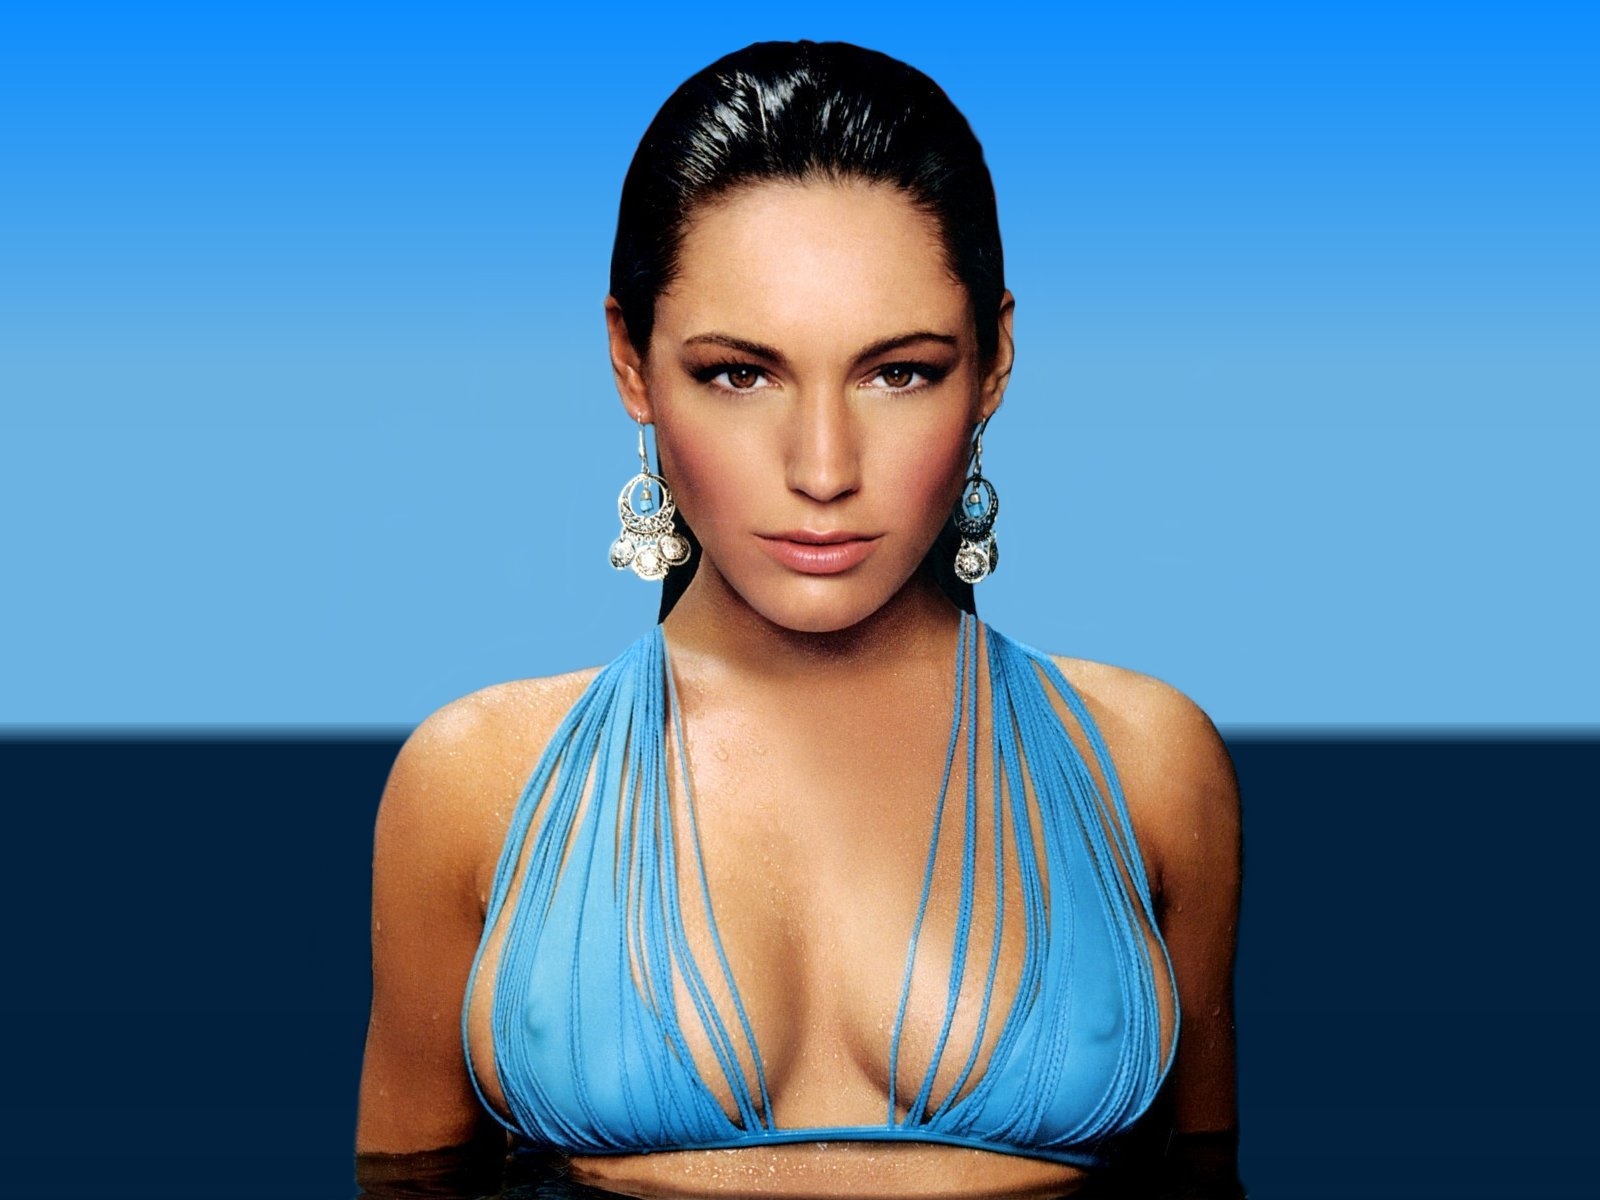 Kelly Brook 5 Hd_wallpapersjpg